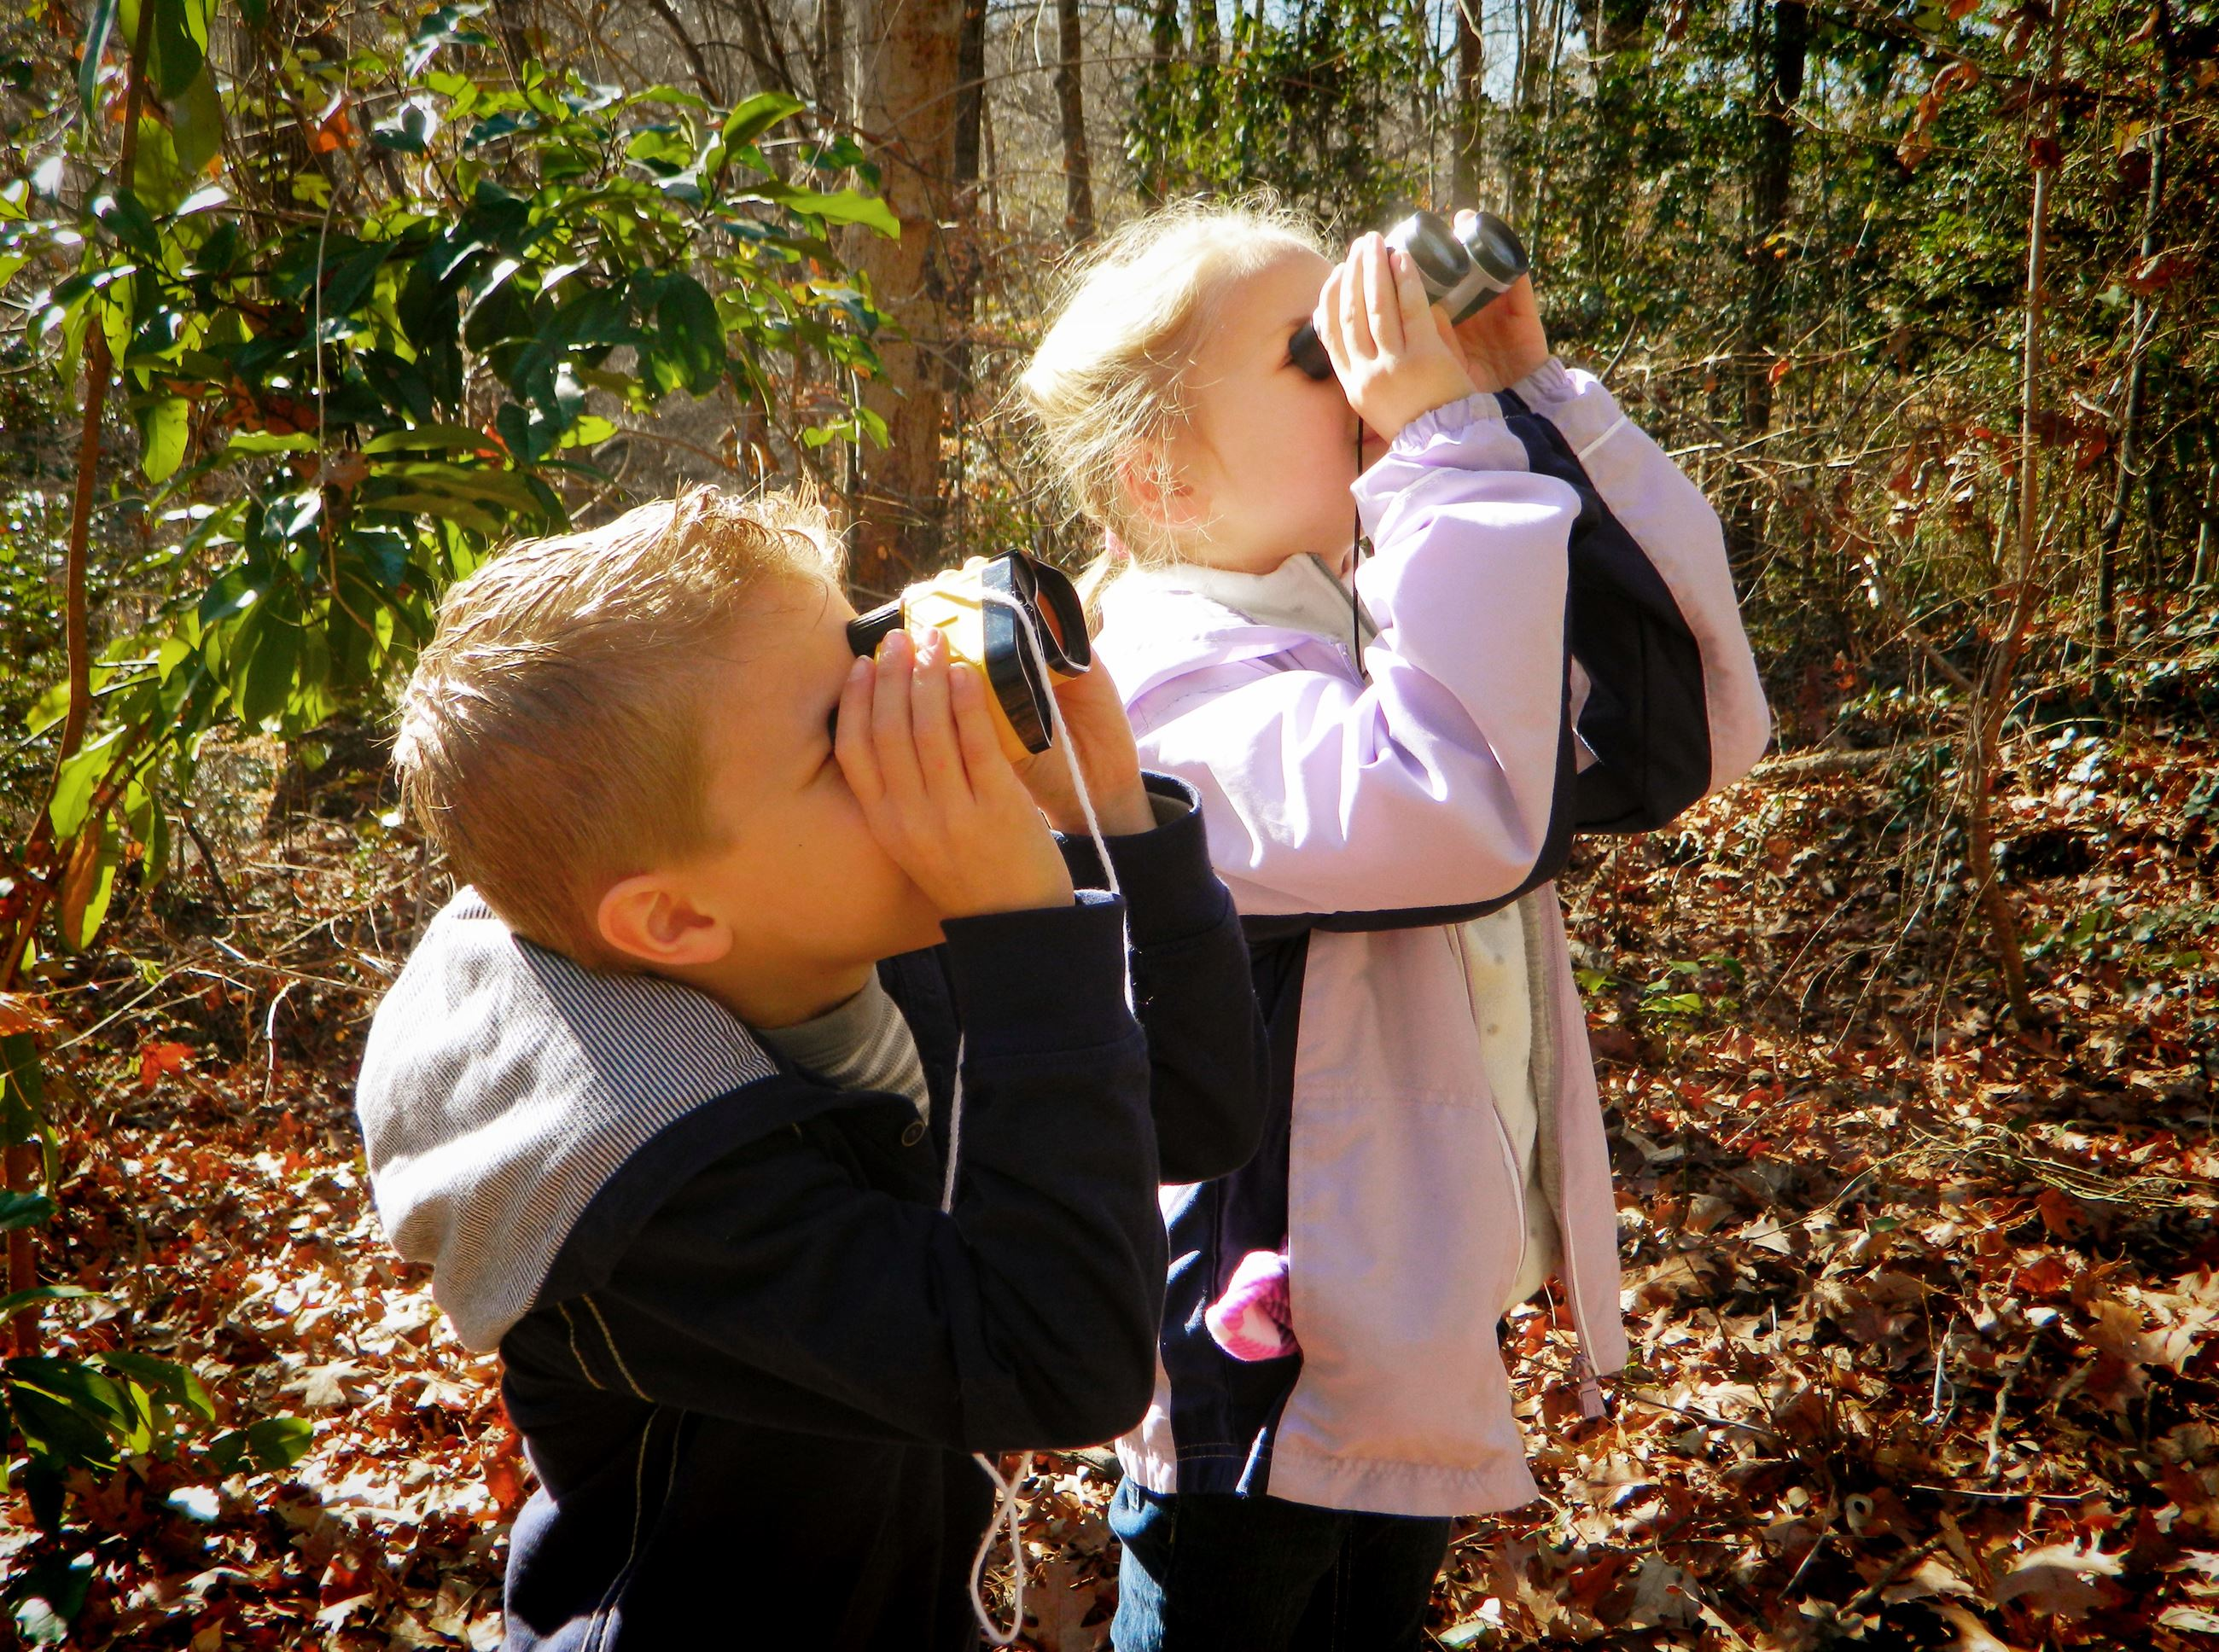 Kids Looking Through Binoculars in the Woods